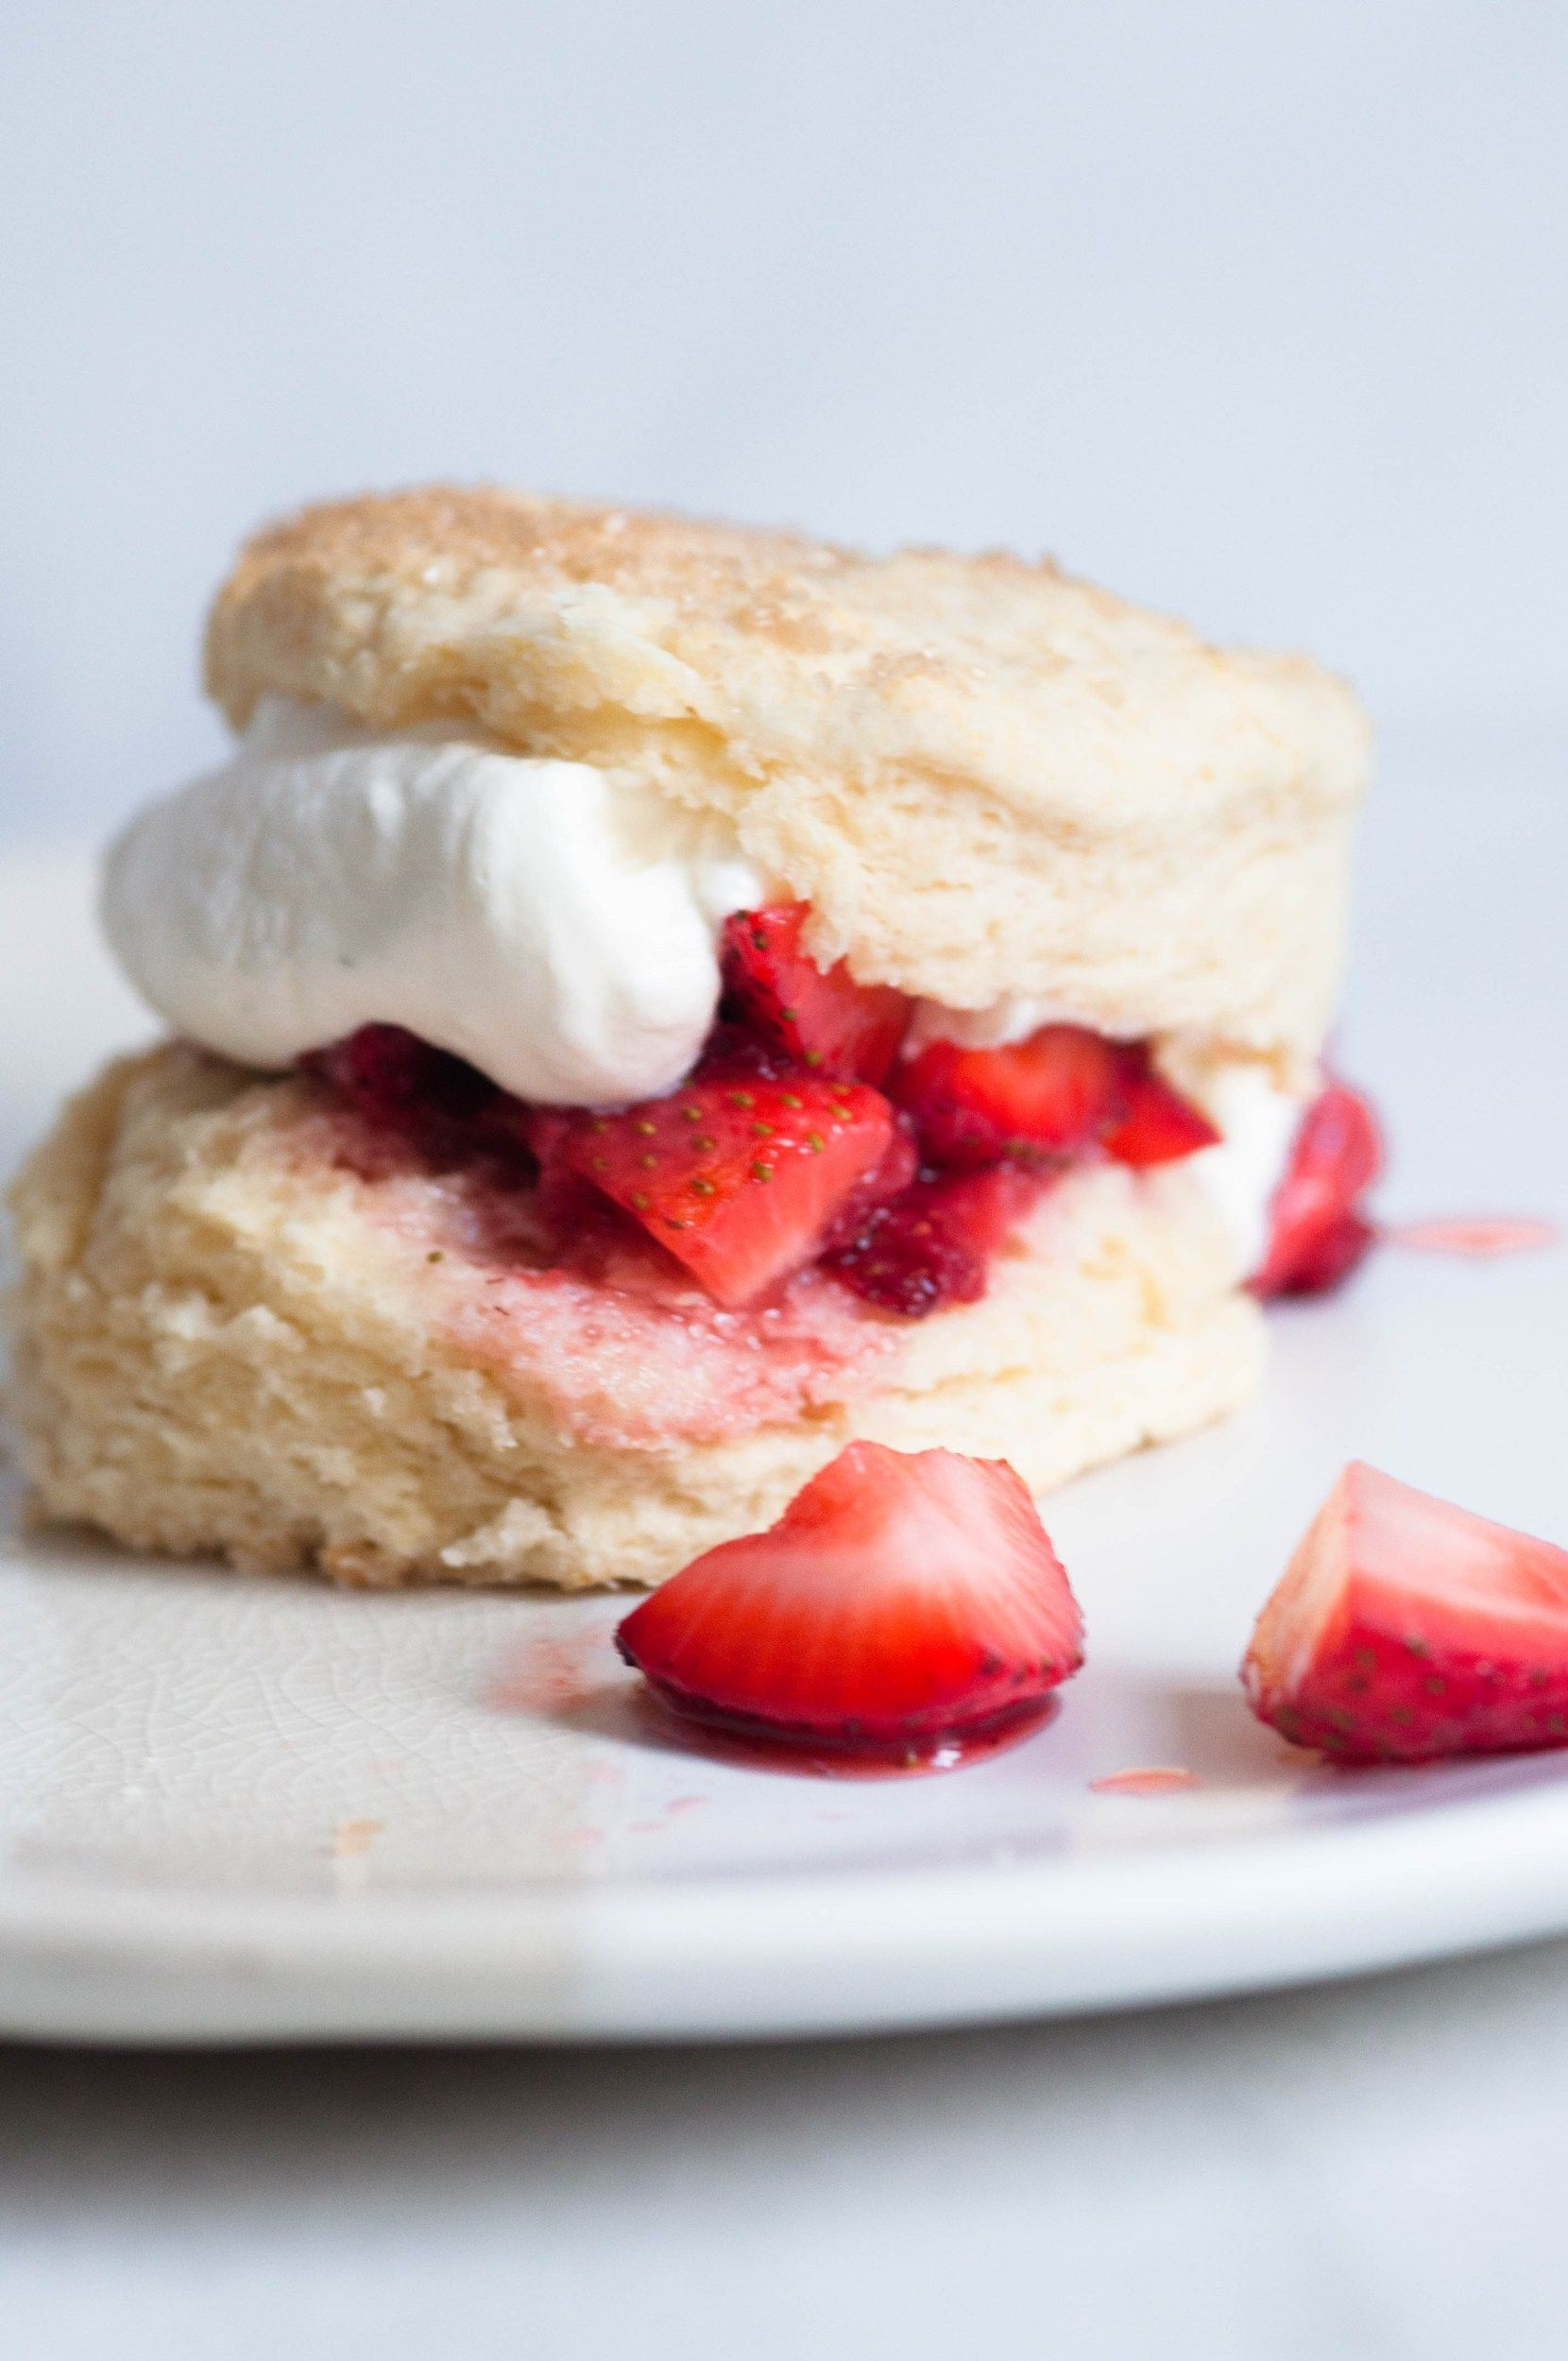 Strawberry Shortcake W Sweet Buttermilk Biscuits Quarter Soul Crisis Savoury Cake Savory Biscuits Recipe Dessert For Dinner